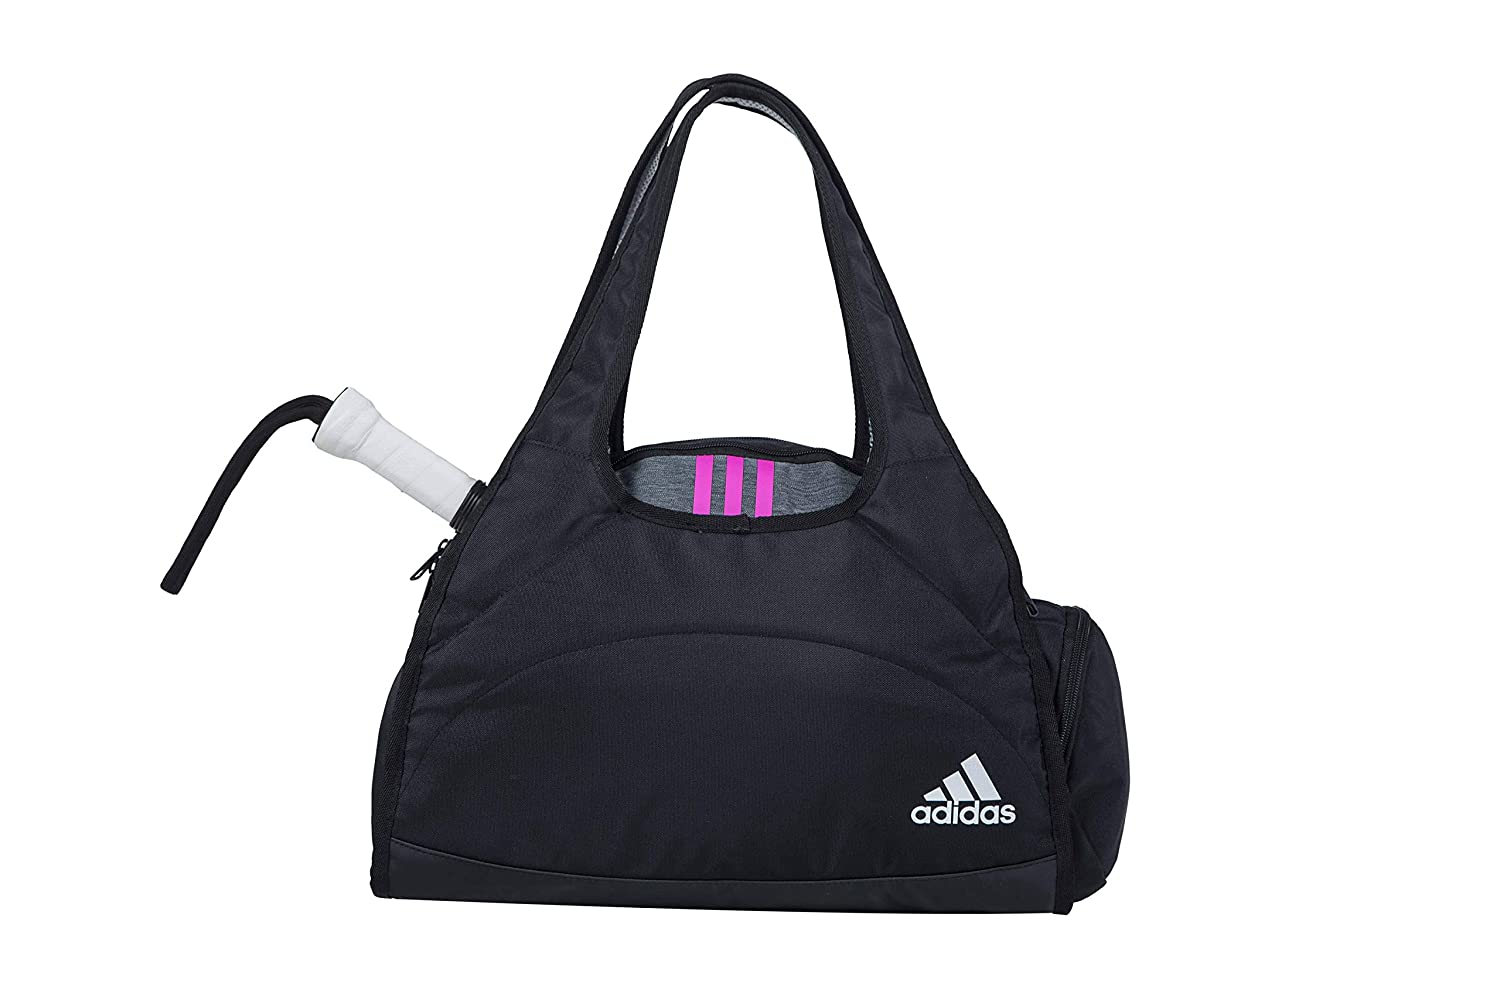 adidas, Bolso Weekend 1.9 2019 Negro Adultos unisex, Multicolor ...